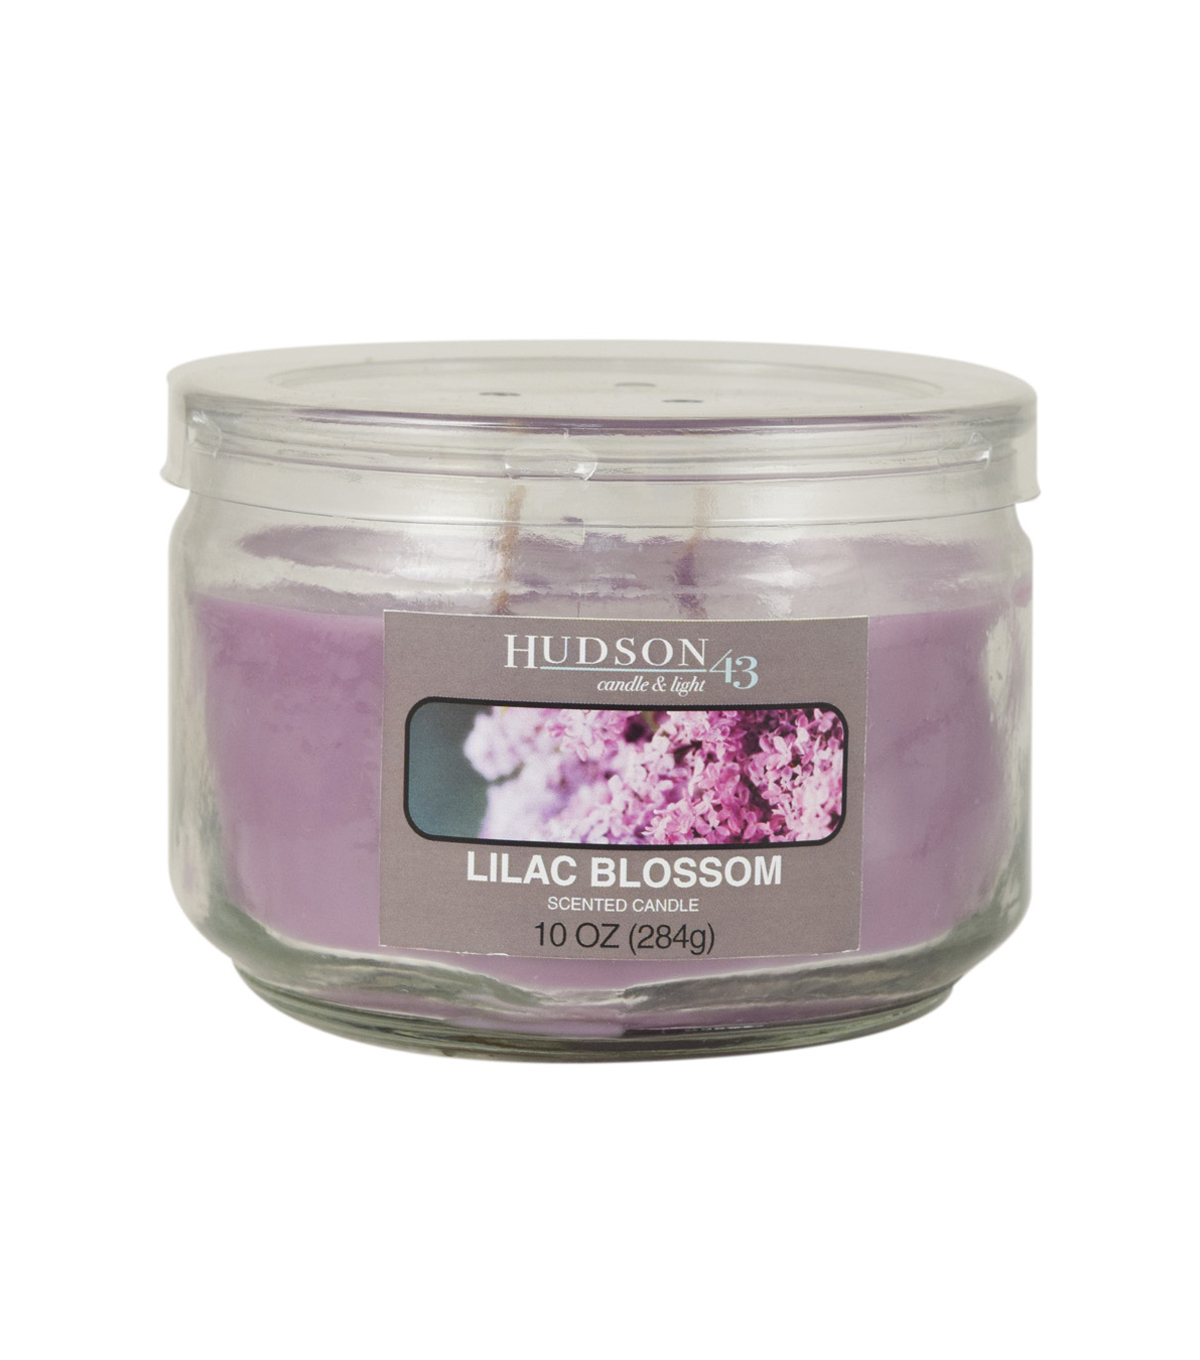 Hudson 43™ Candle & Light Collection 10oz  Value Jar Lilac Blossom